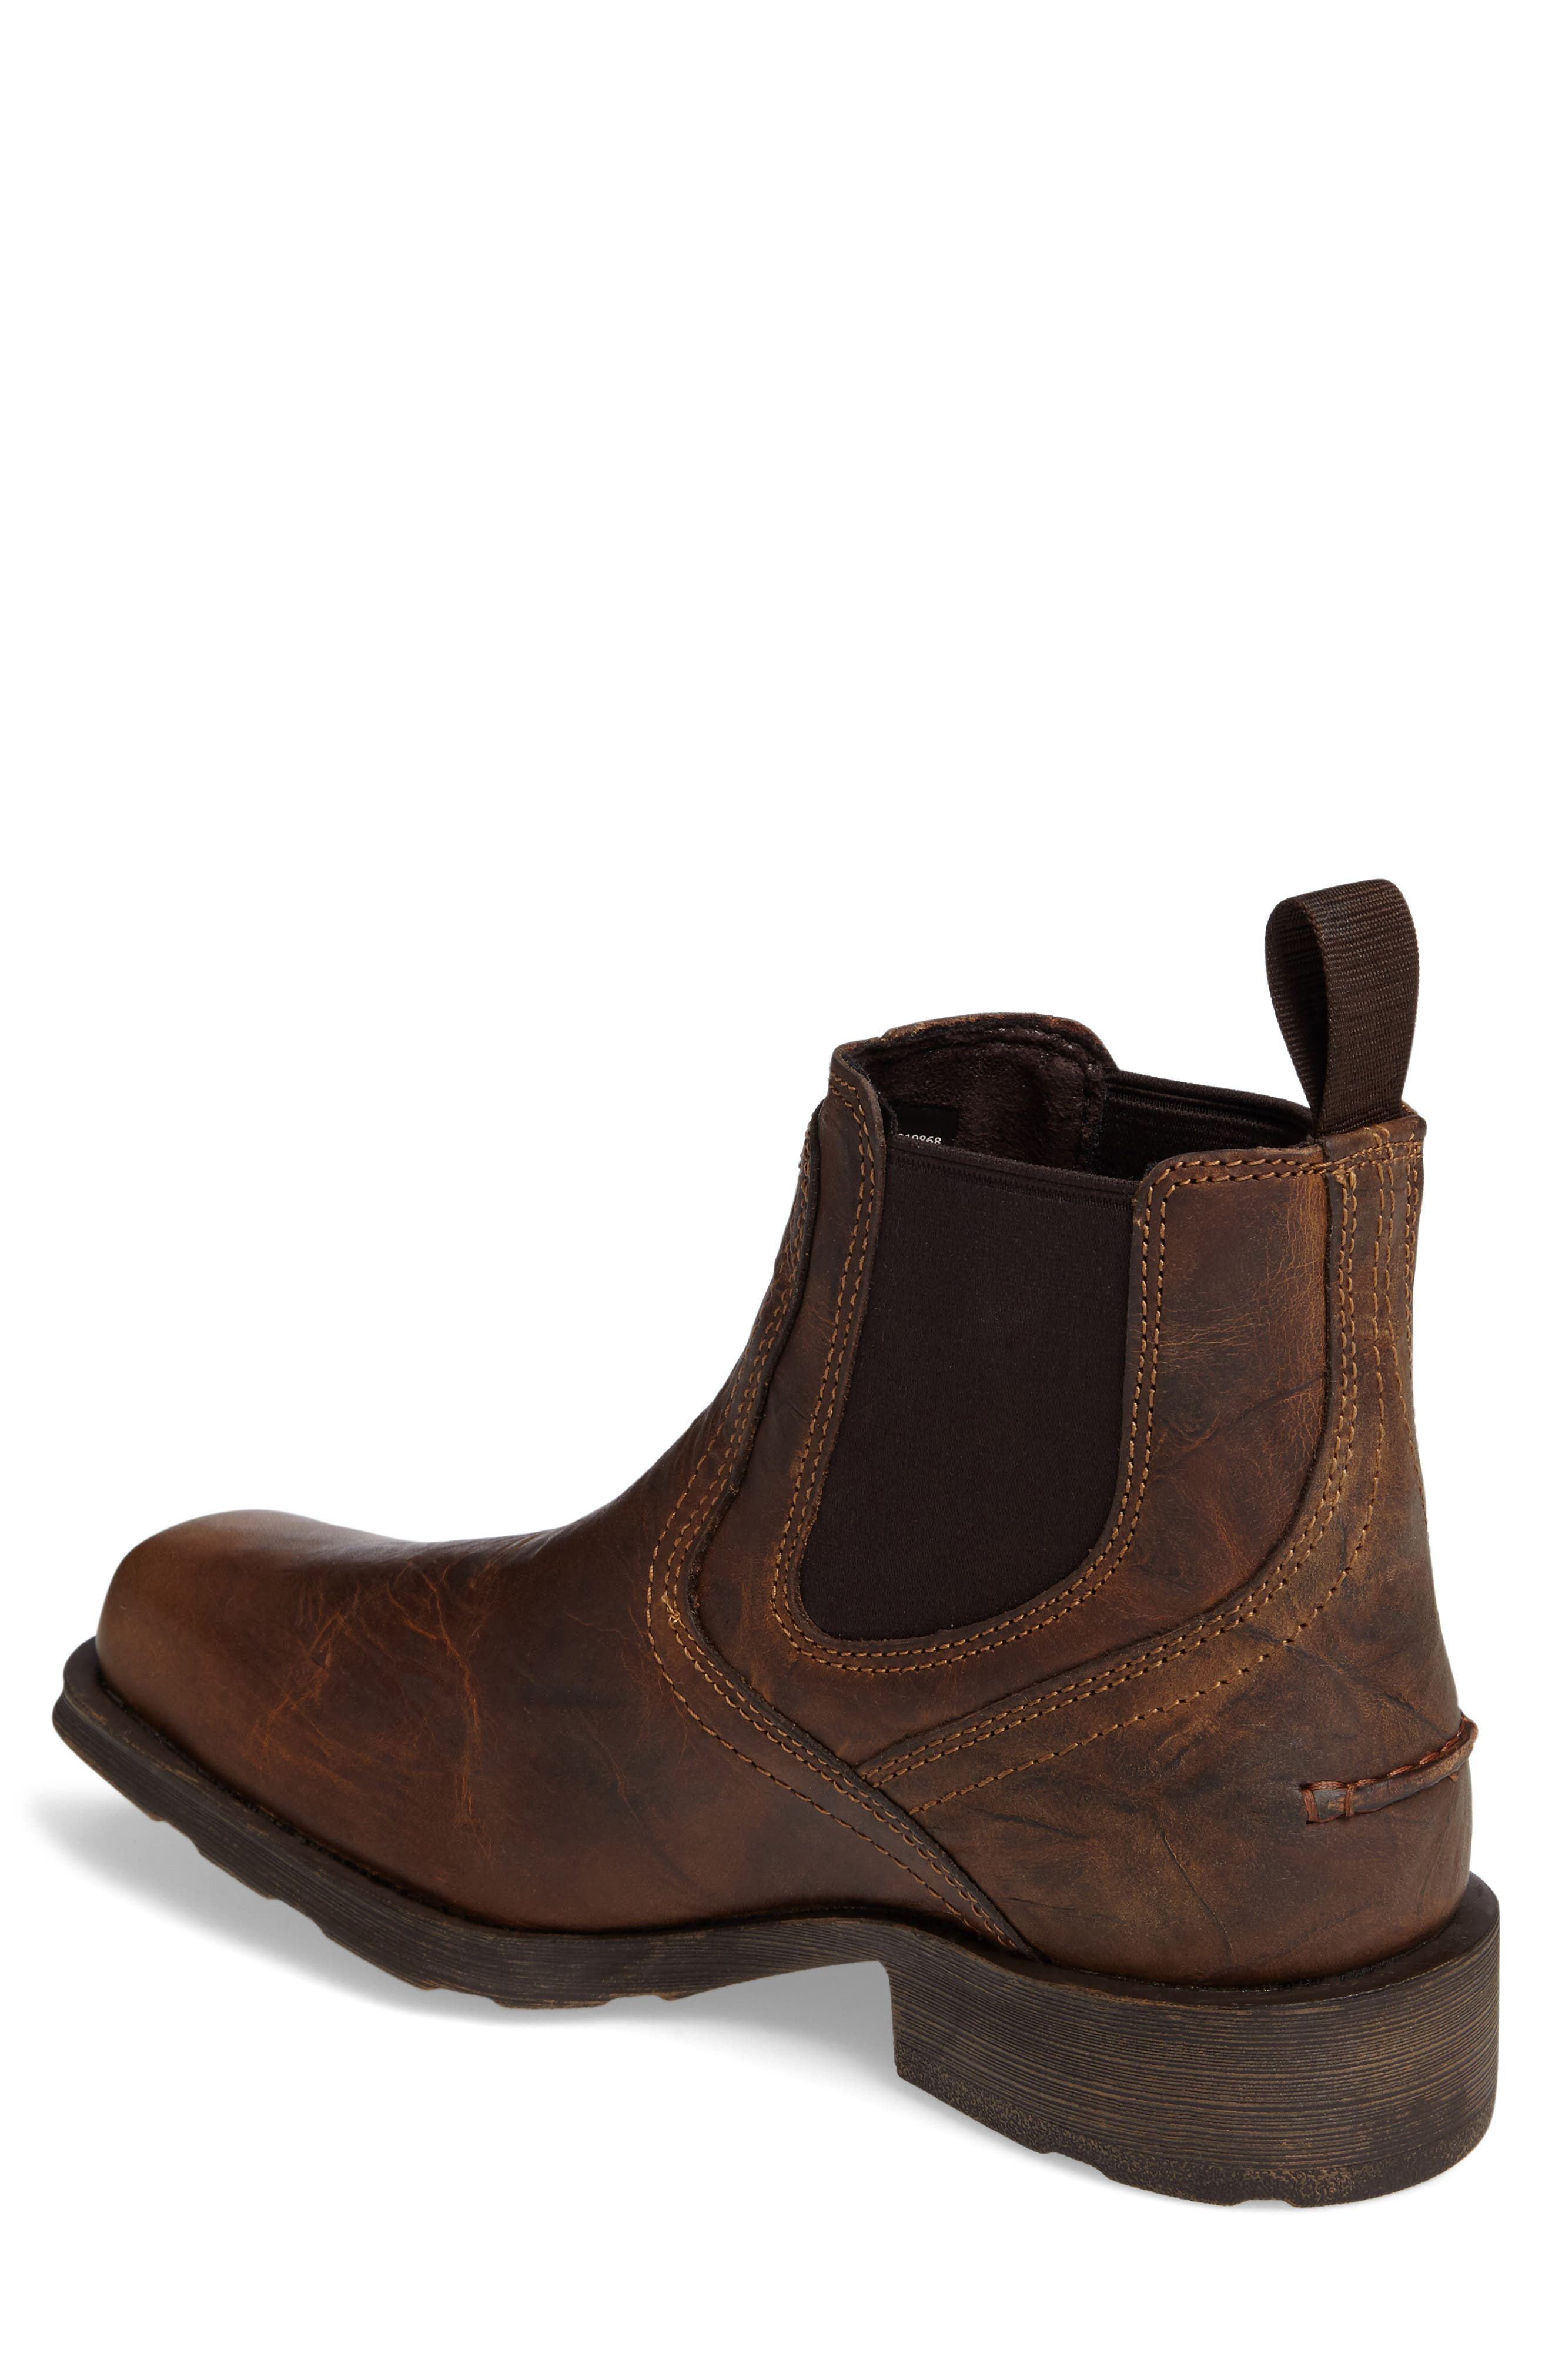 ARIAT,                             Midtown Rambler Mid Chelsea Boot,                             Alternate thumbnail 2, color,                             BARN BROWN